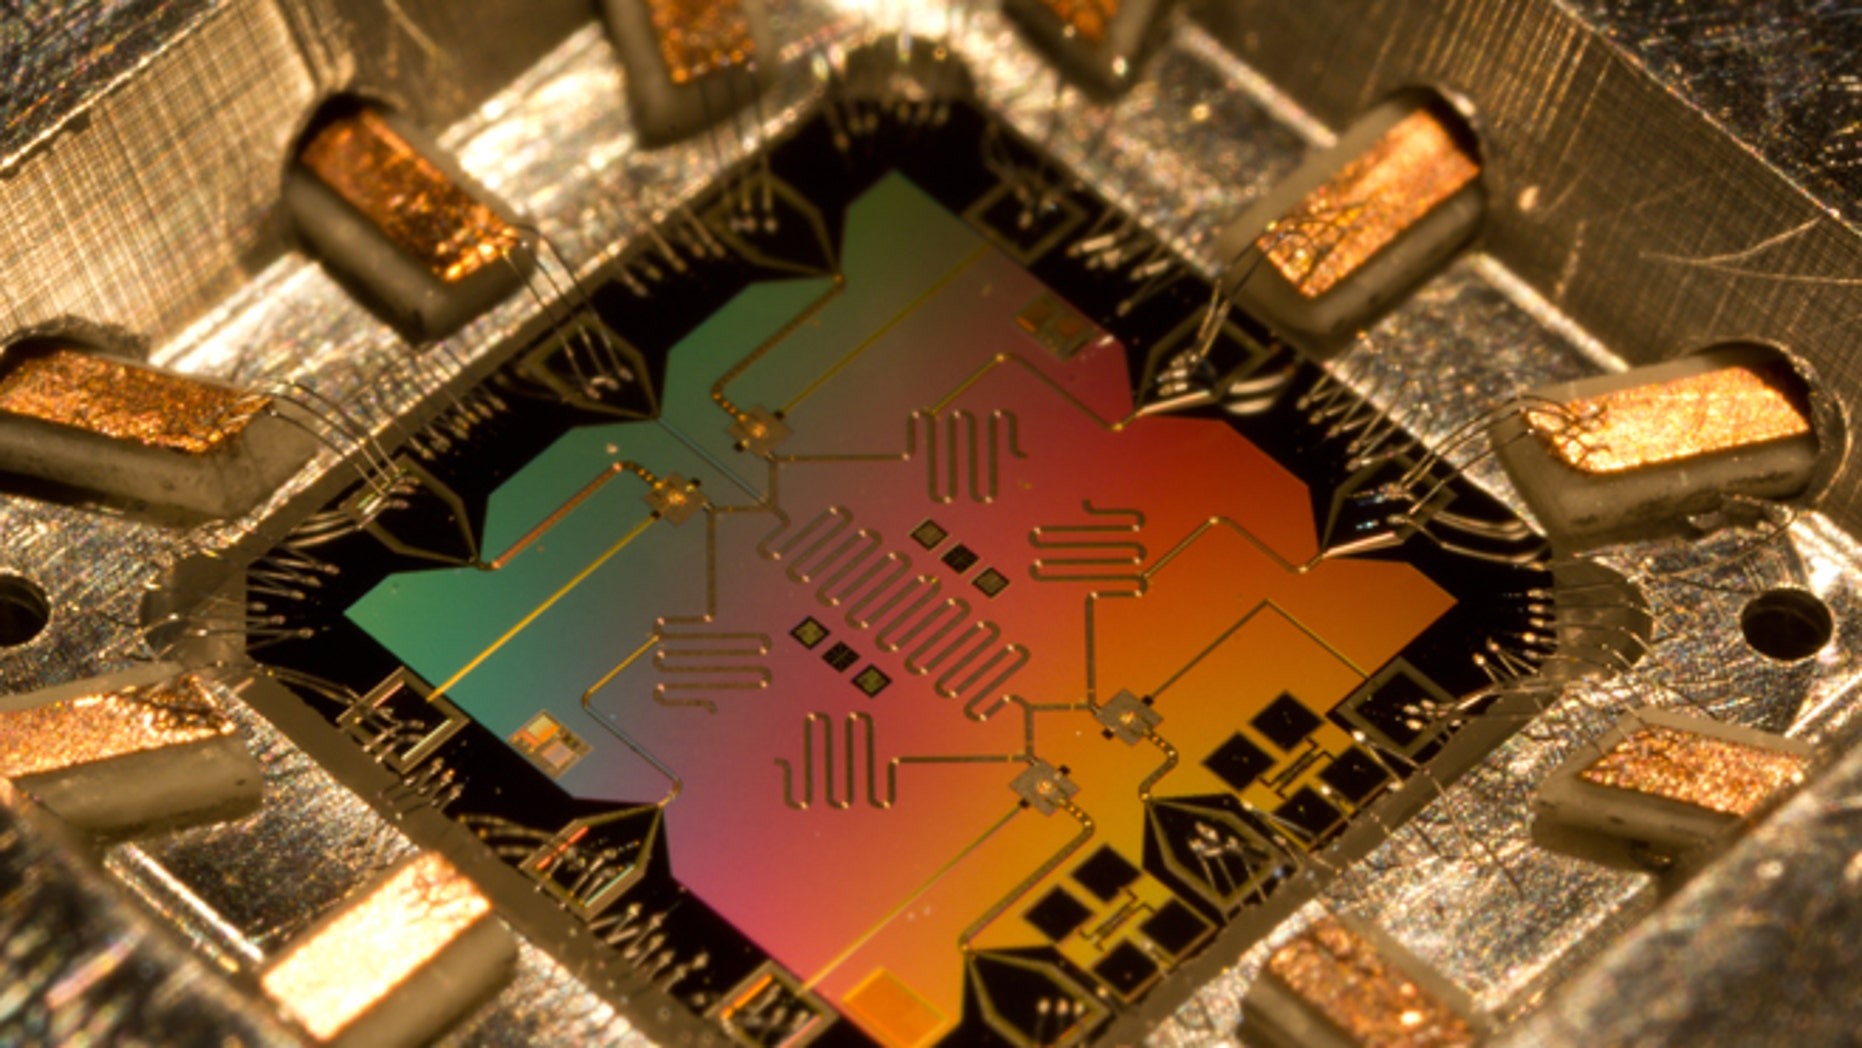 A quantum computer chip can process information several orders of magnitude faster than an ordinary silicon computer chip.